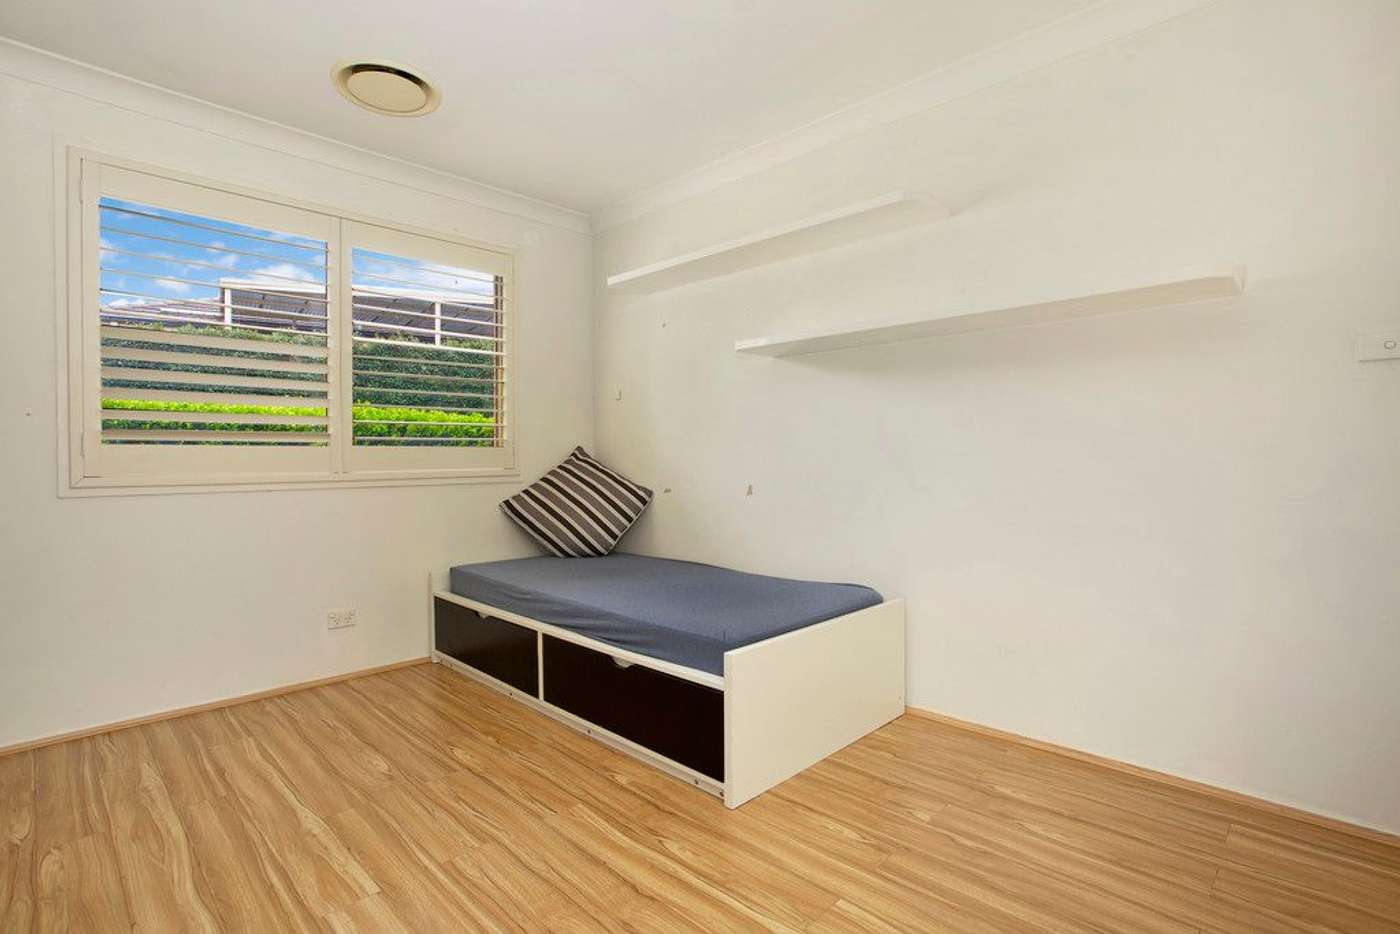 Fifth view of Homely house listing, 35 Solitaire Court, Stanhope Gardens NSW 2768